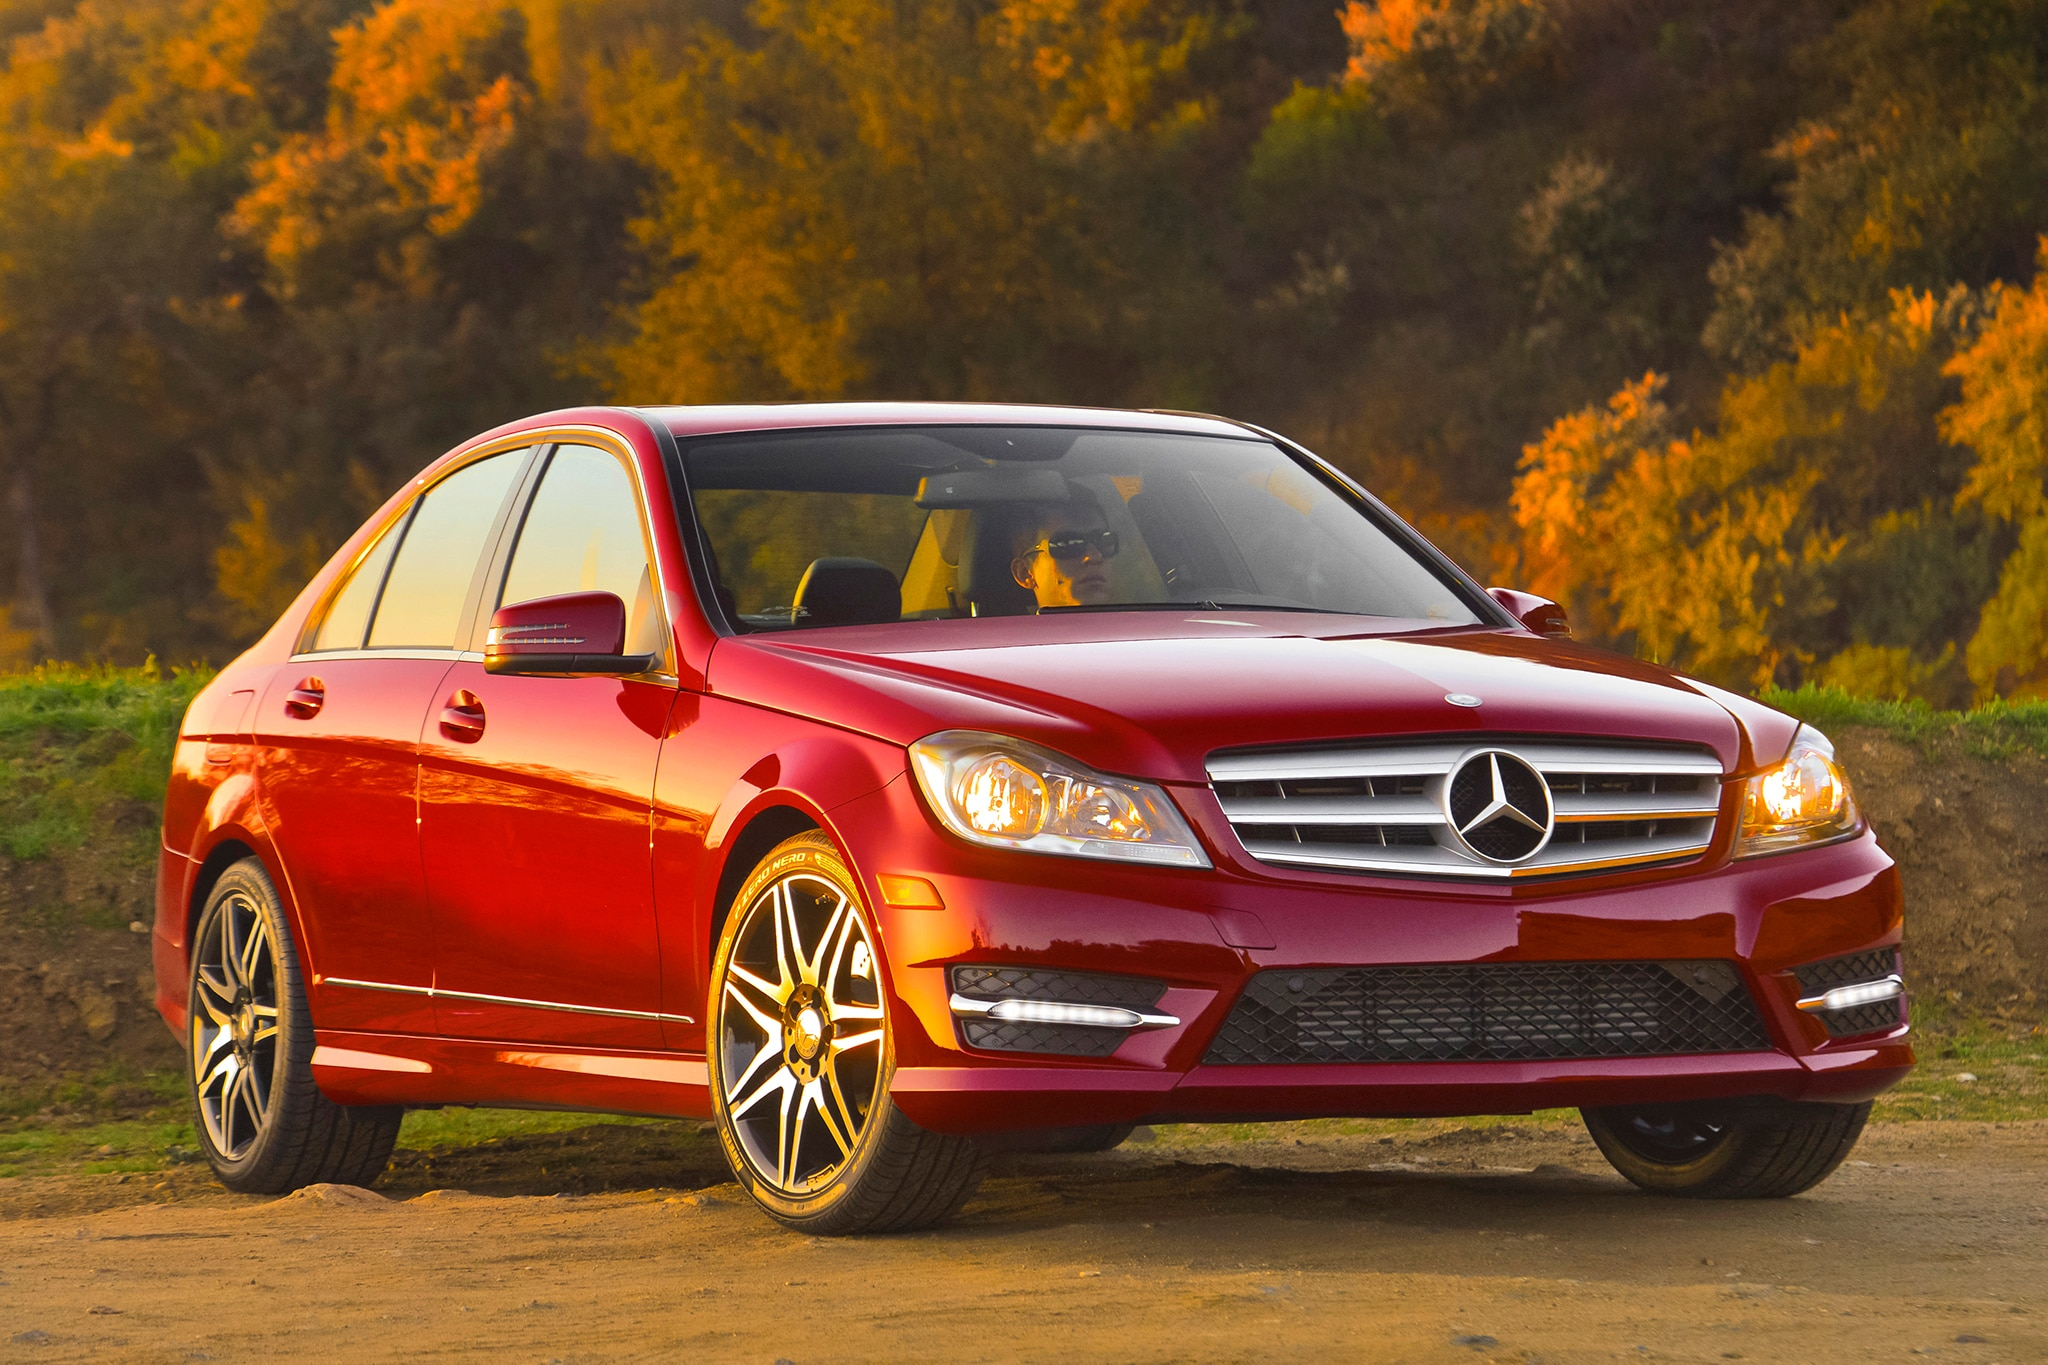 2013 14 Mercedes Benz C300 4Matic Fuel Economy Revised By EPA